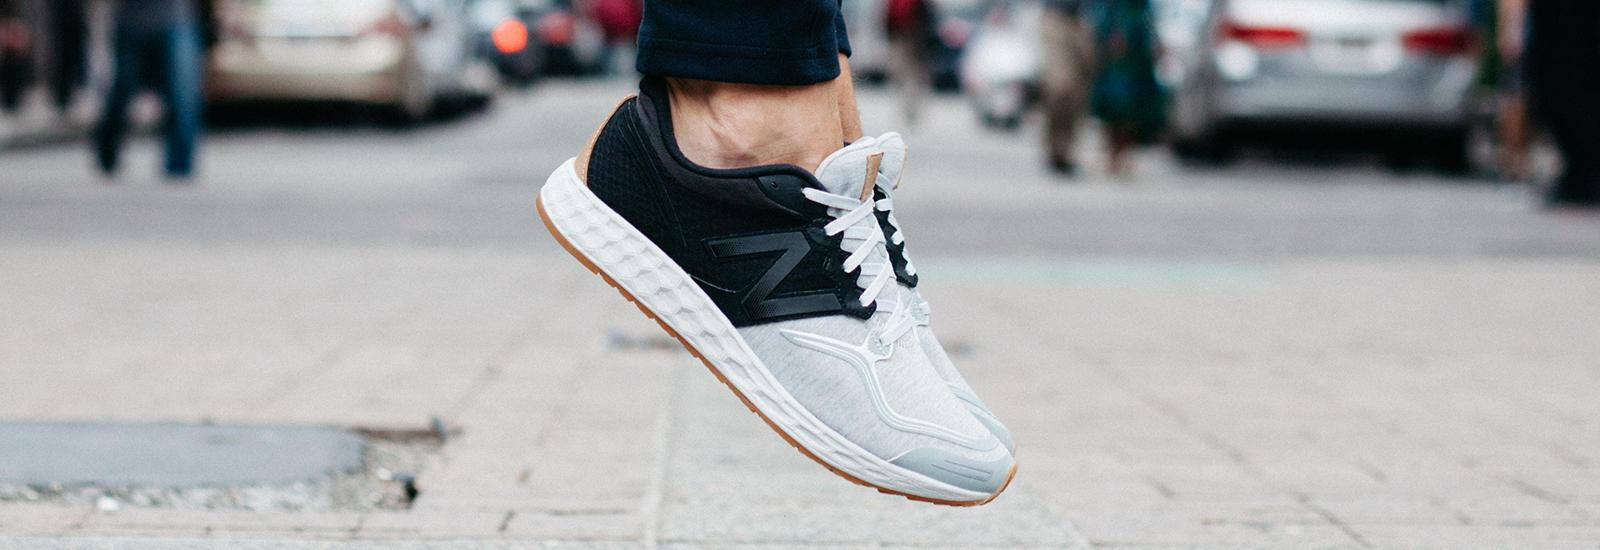 New Balance Canada Shopping Guide